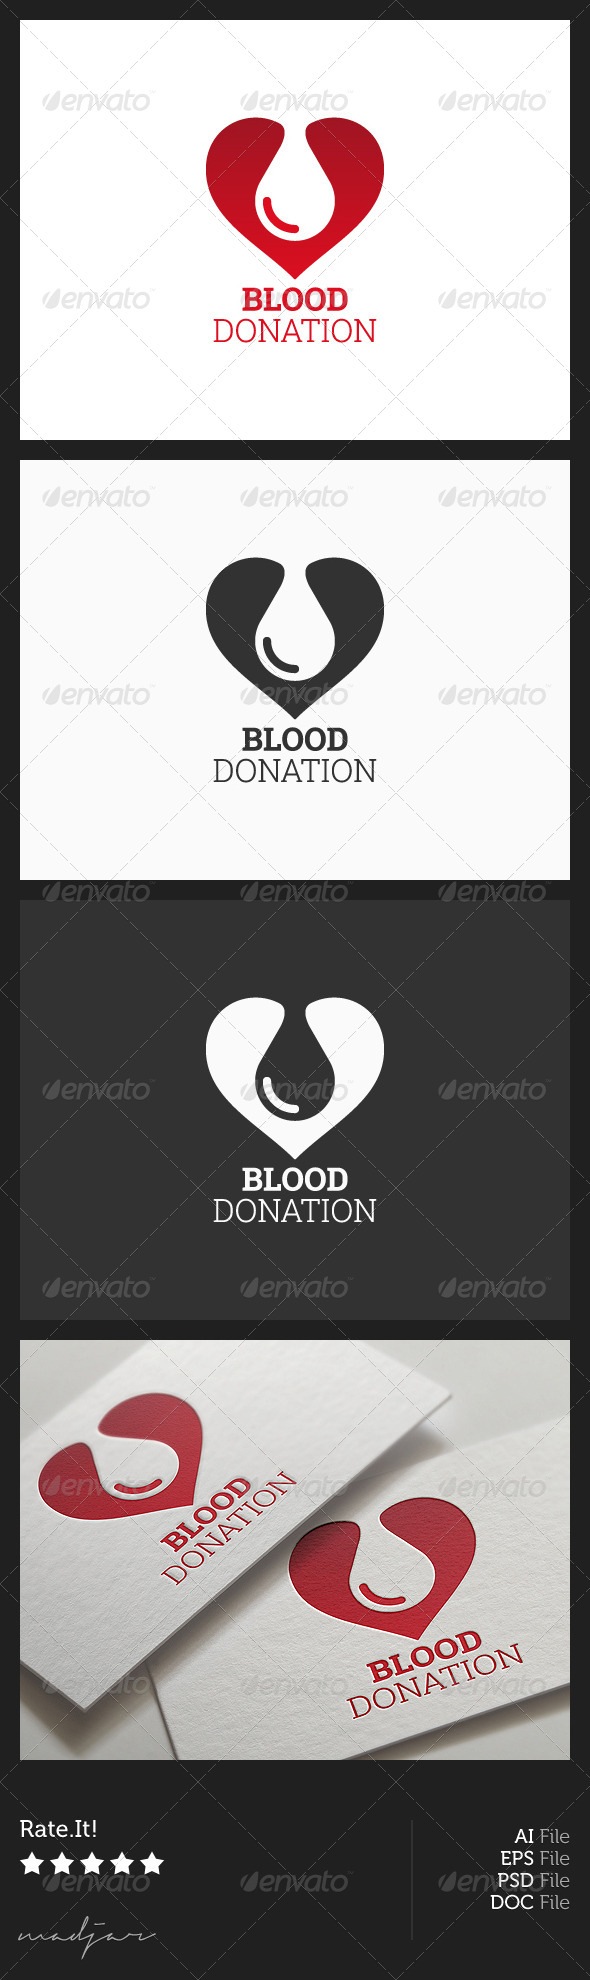 Blood Donation Logo - Objects Logo Templates